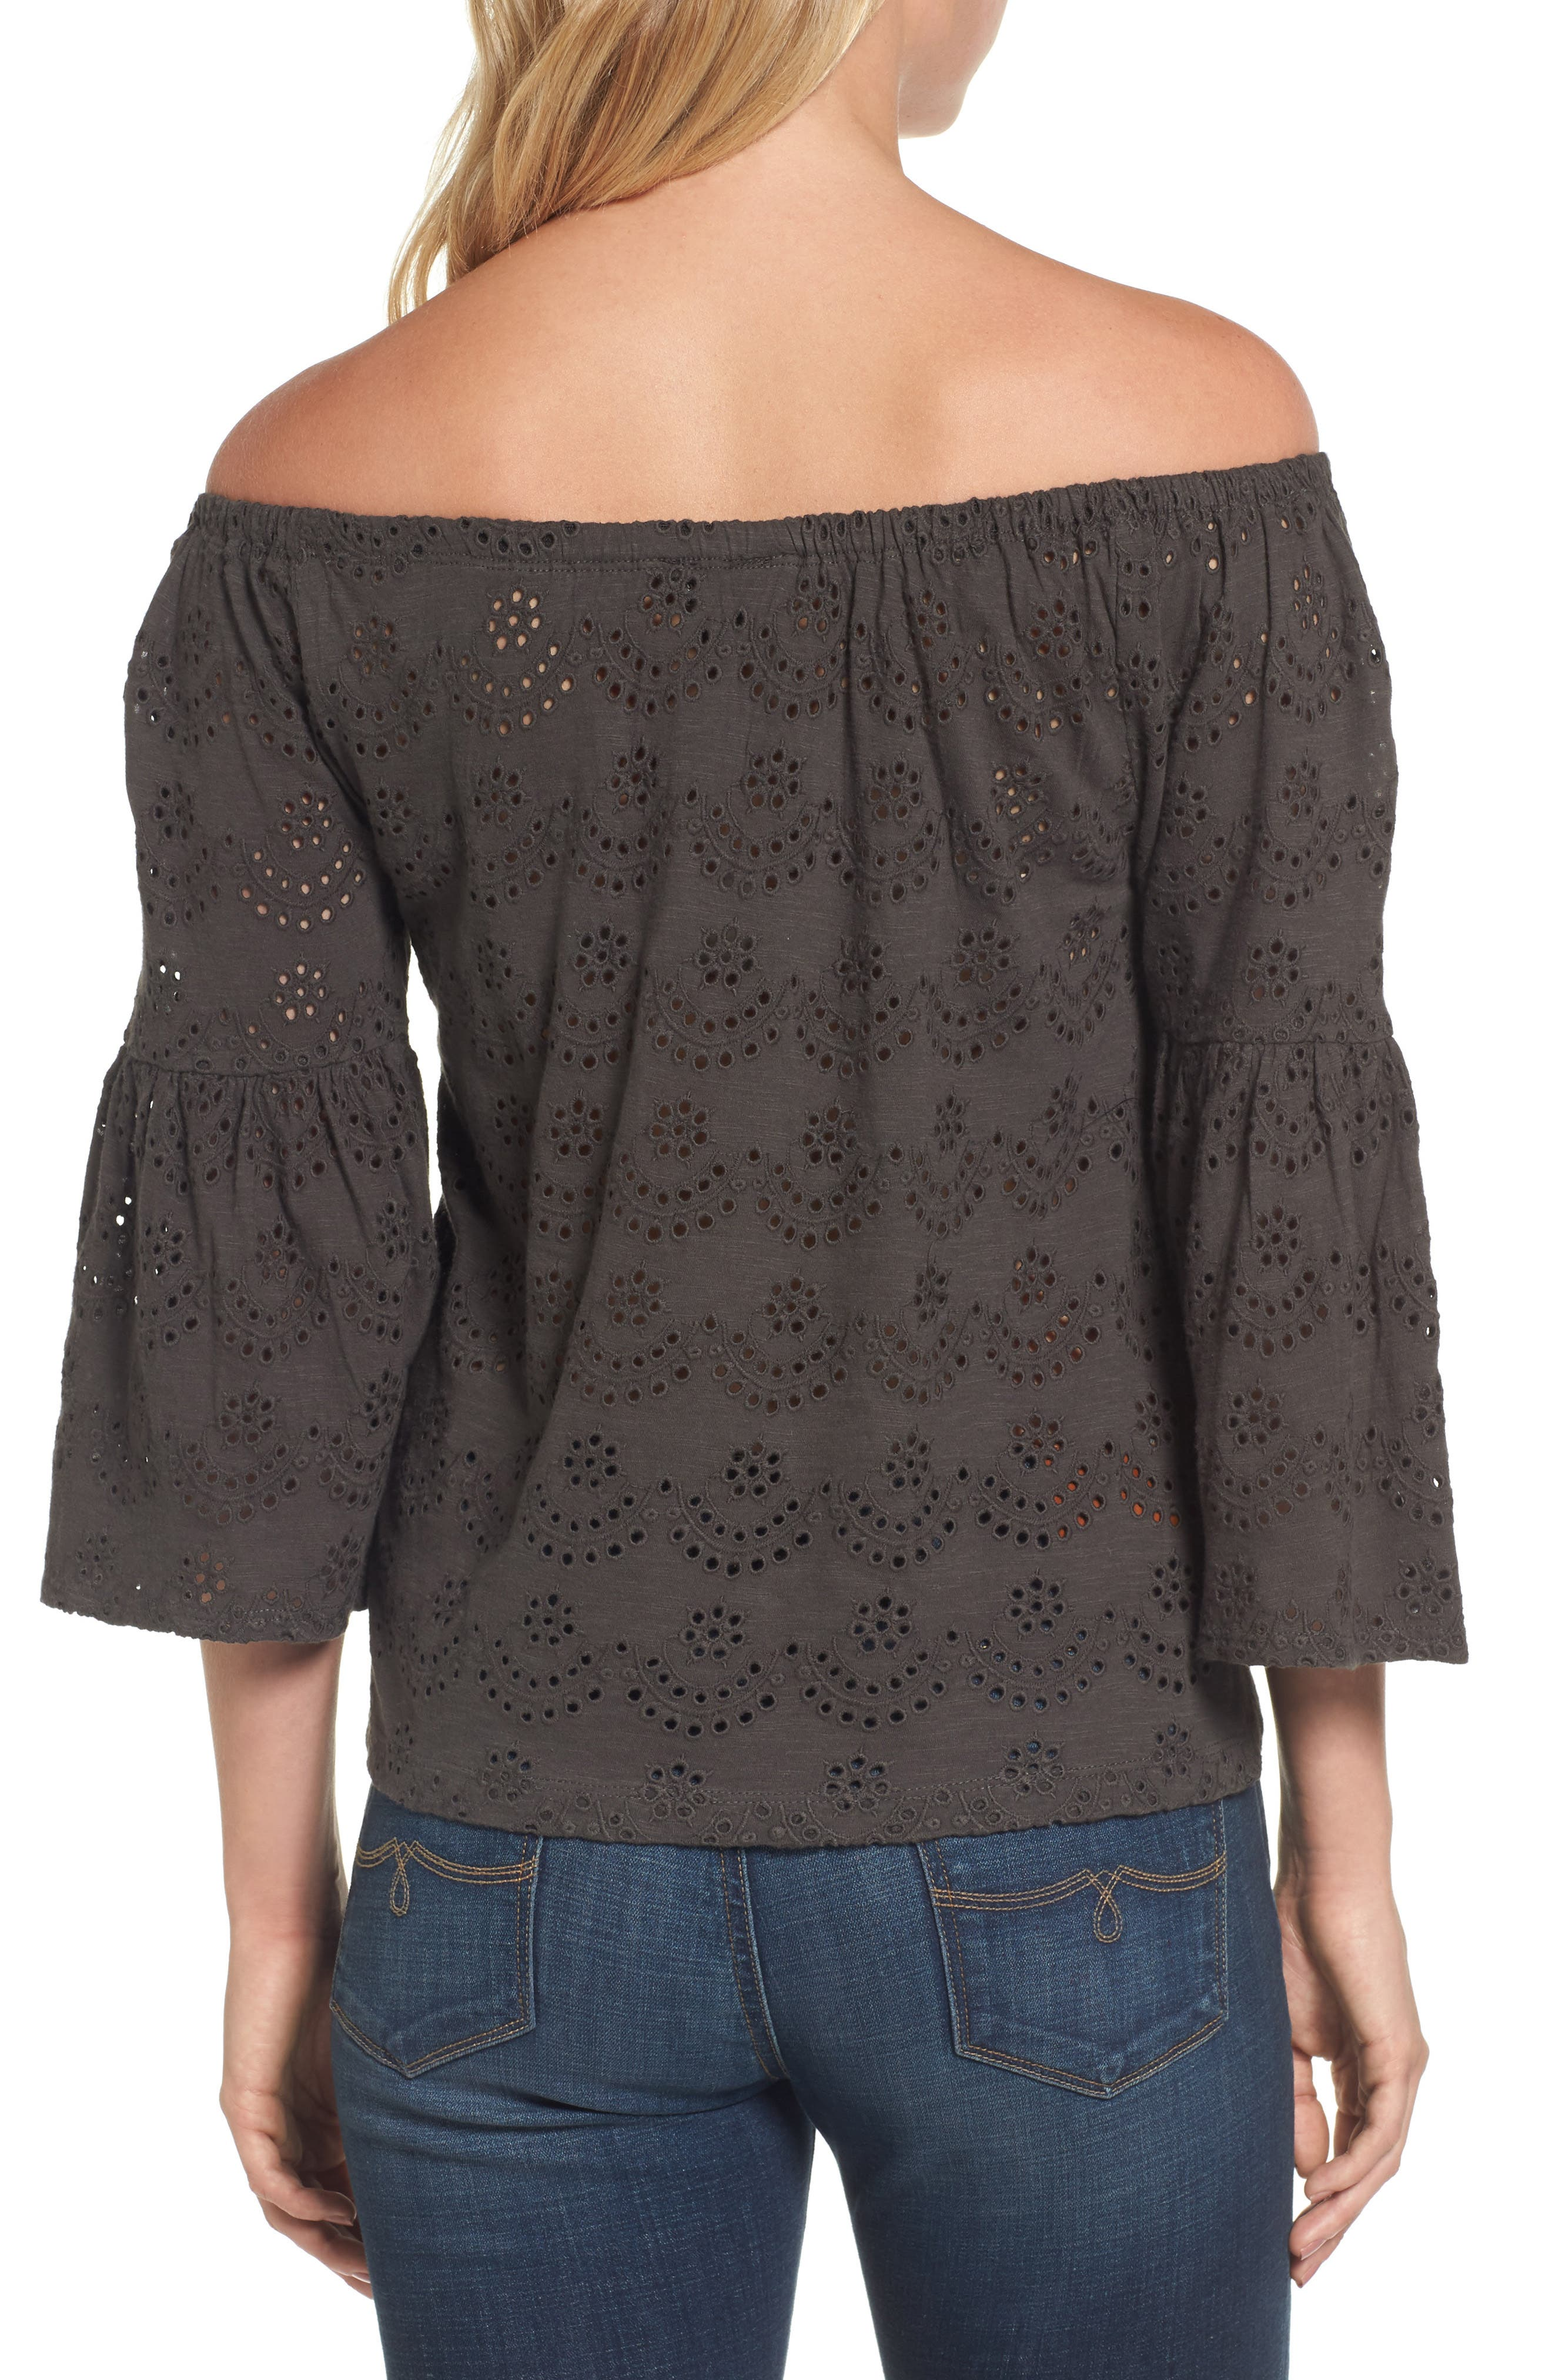 Eyelet Off the Shoulder Blouse,                             Alternate thumbnail 2, color,                             002